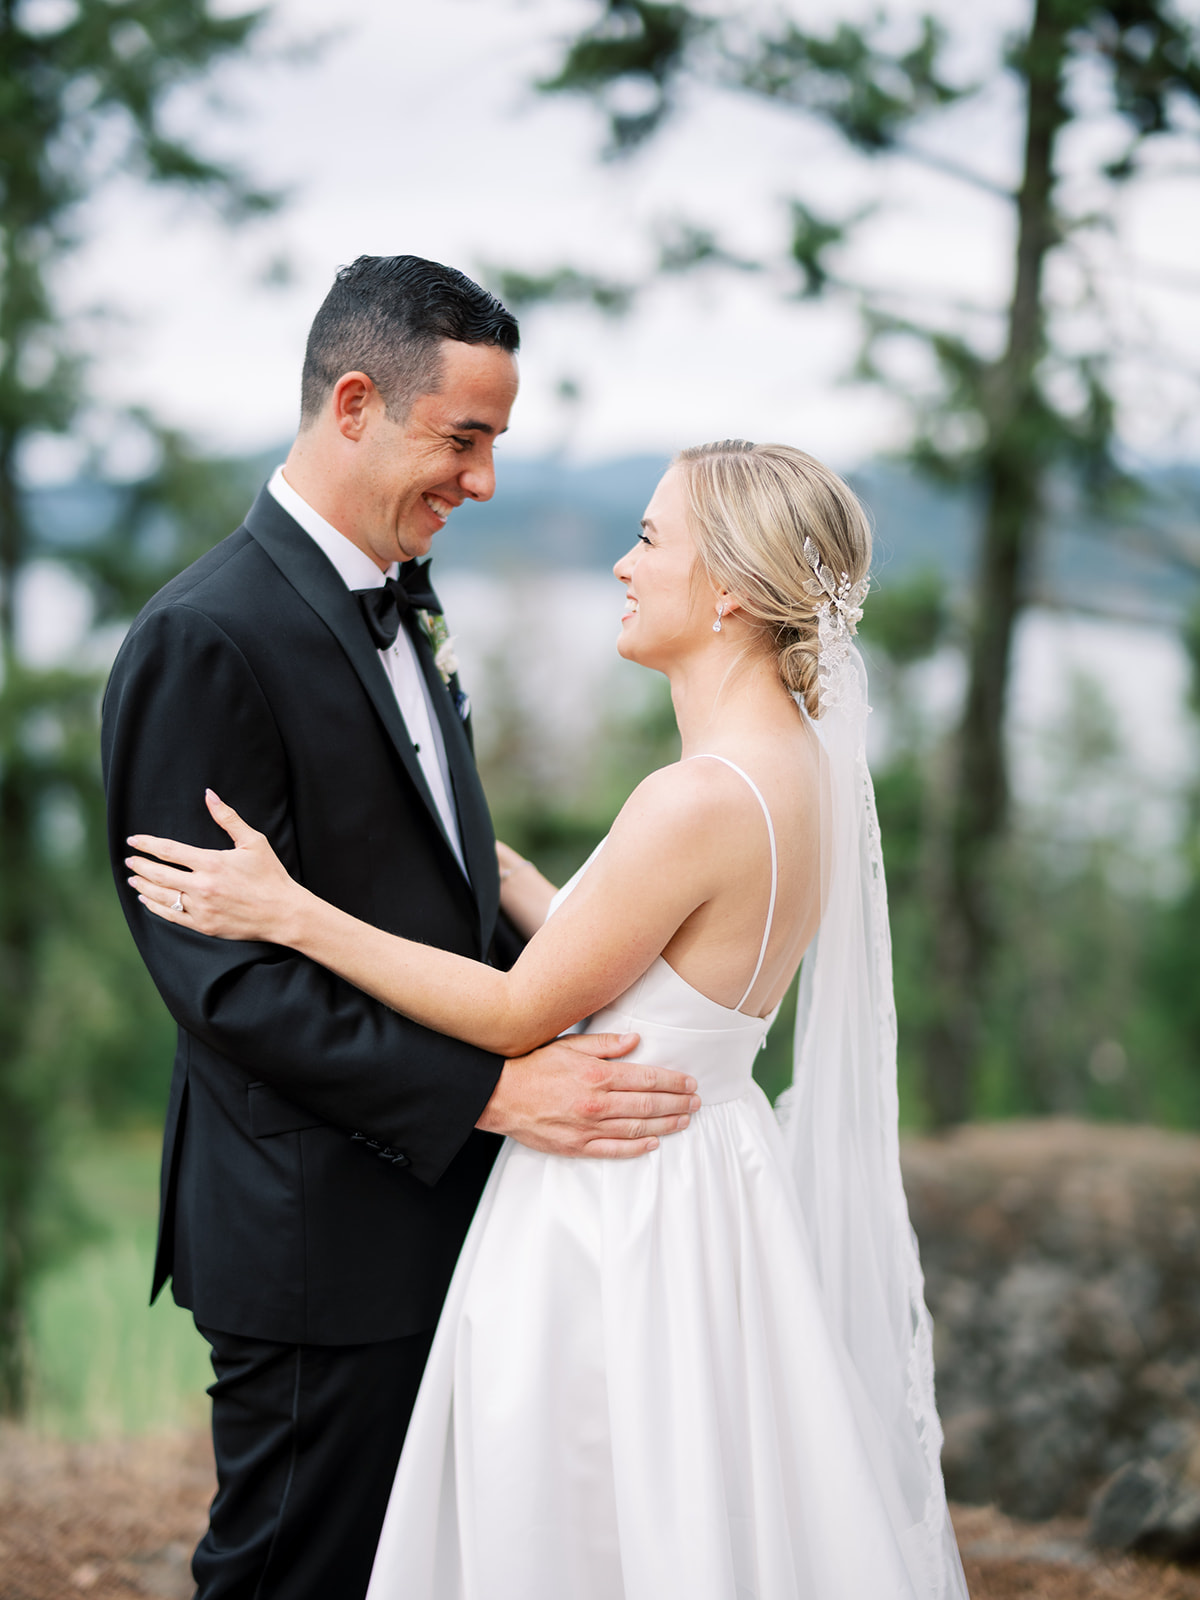 bride and groom embrace smiling outside during first look